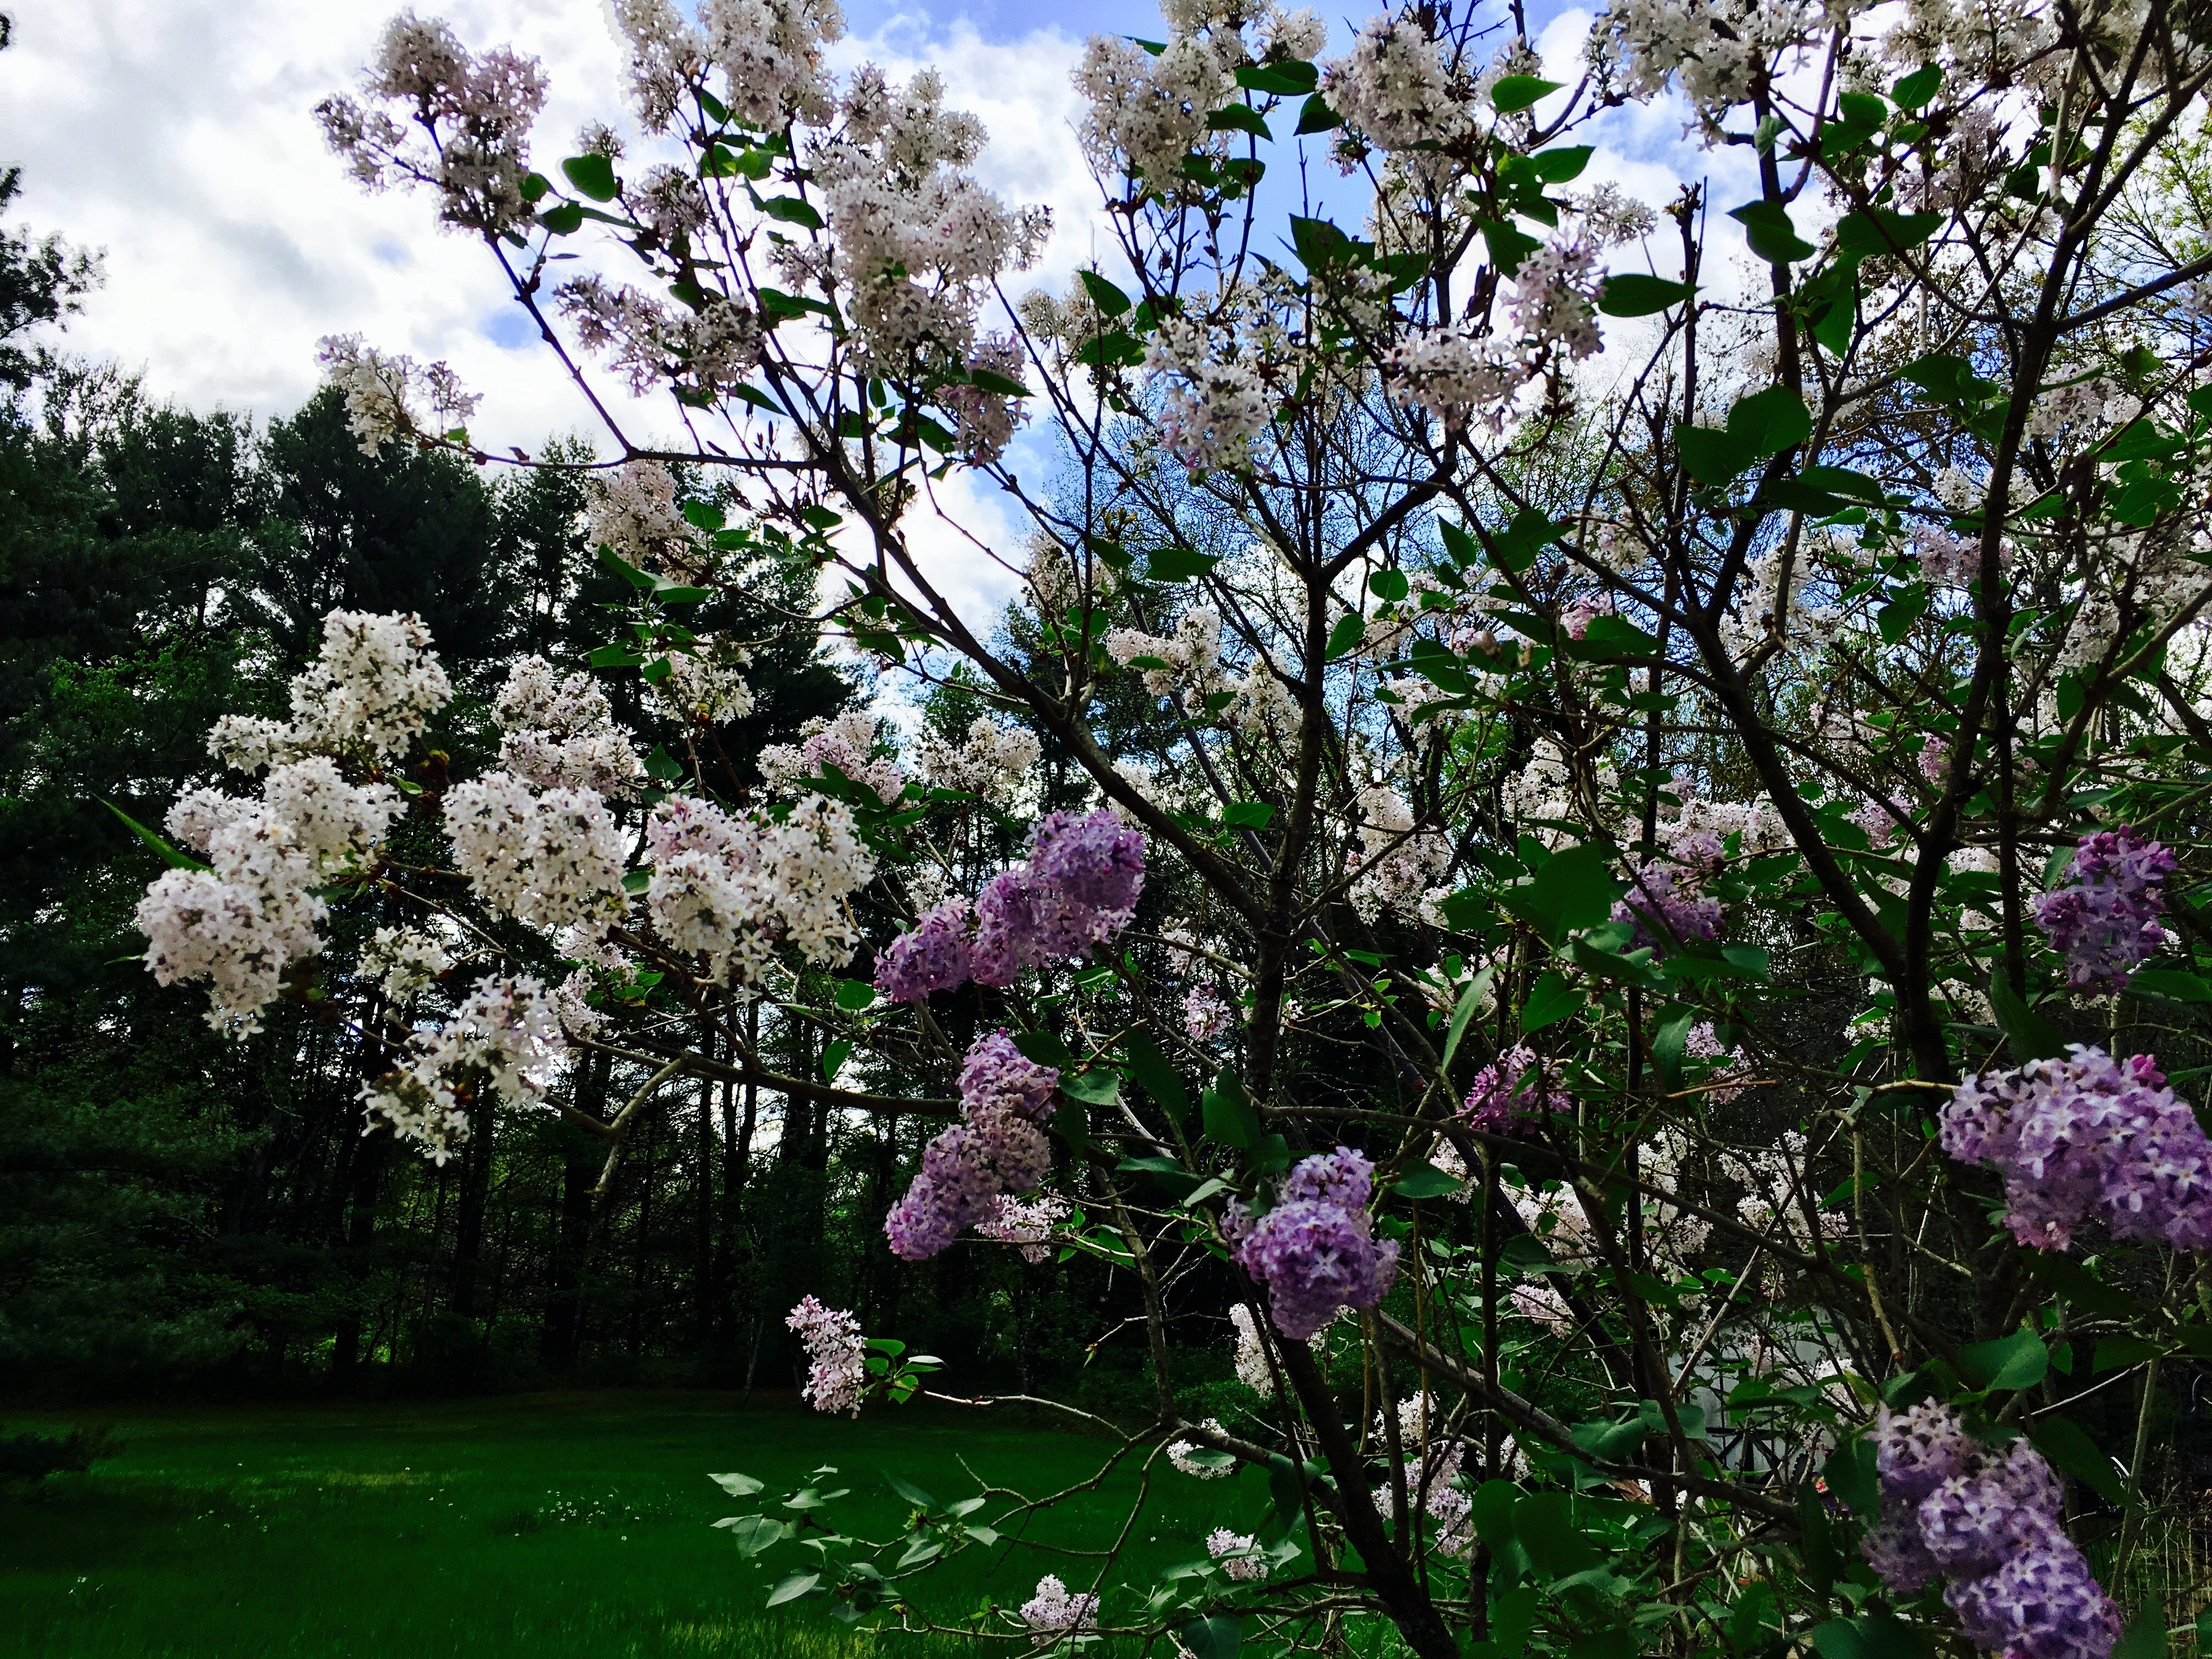 Lilacs remind this author of motherhood.